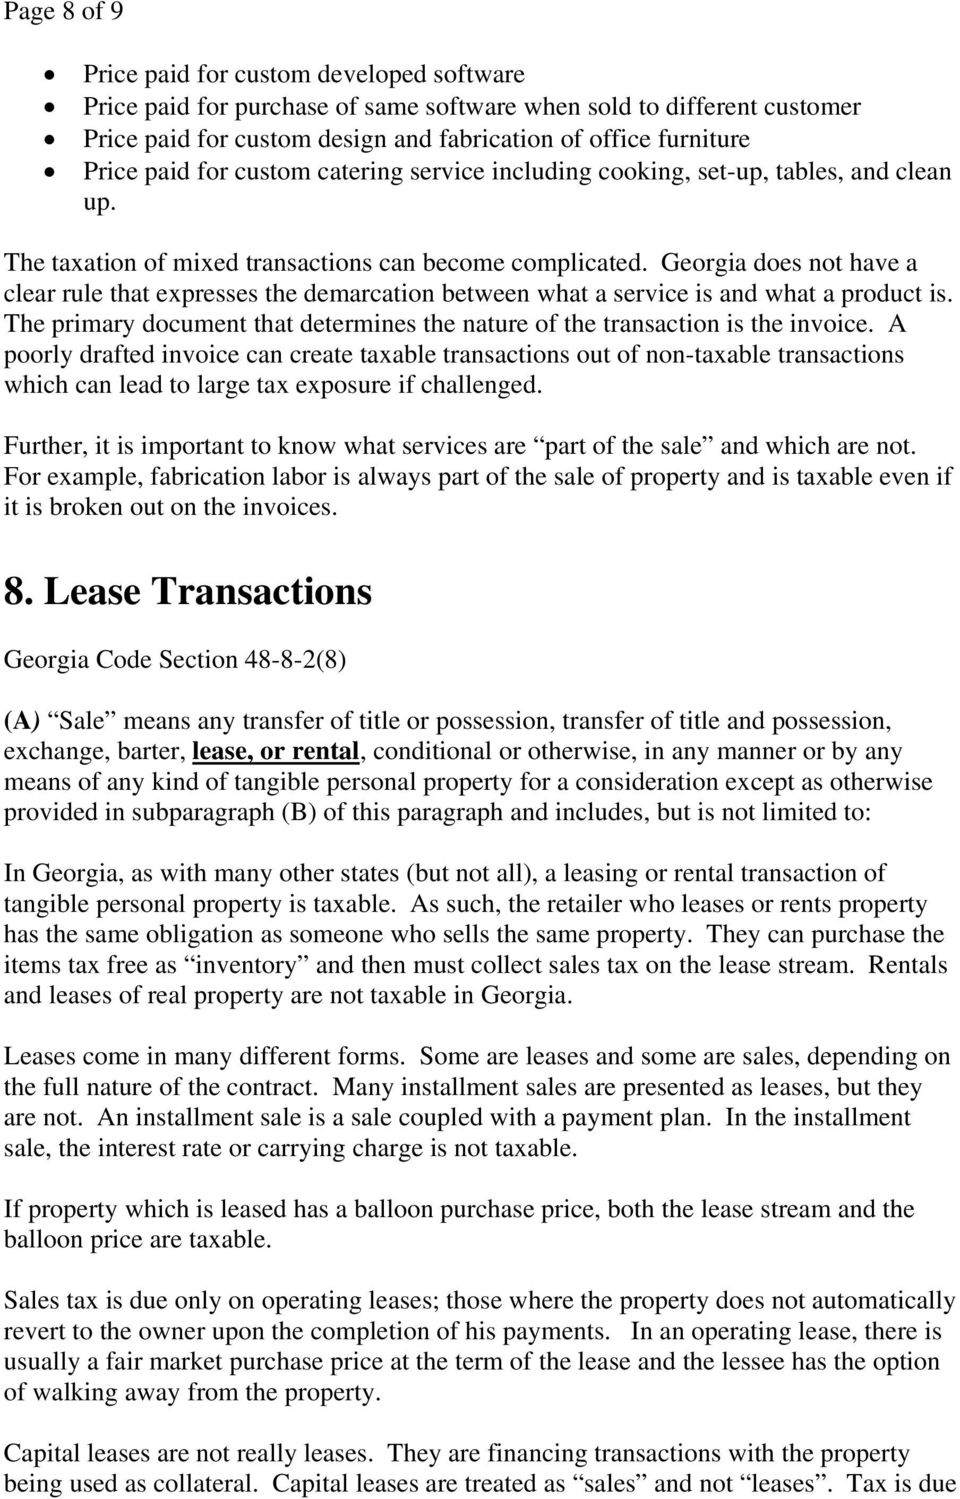 Georgia does not have a clear rule that expresses the demarcation between what a service is and what a product is. The primary document that determines the nature of the transaction is the invoice.